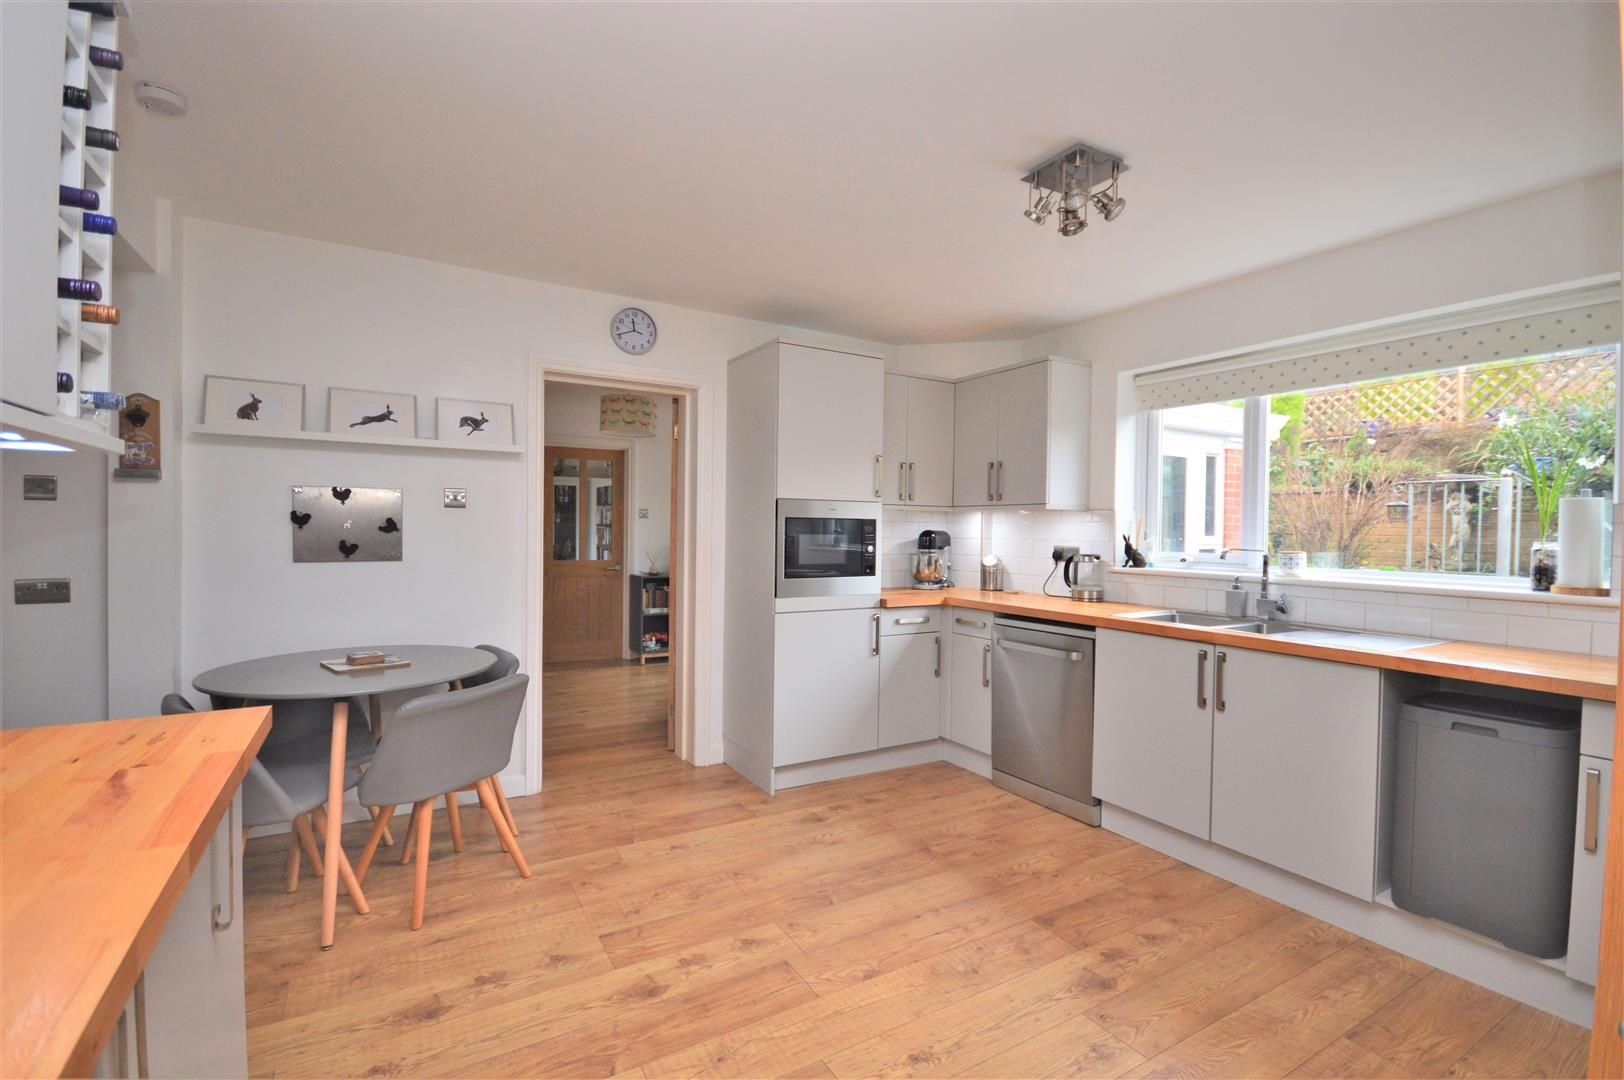 4 bed detached for sale in Kings Caple  - Property Image 2